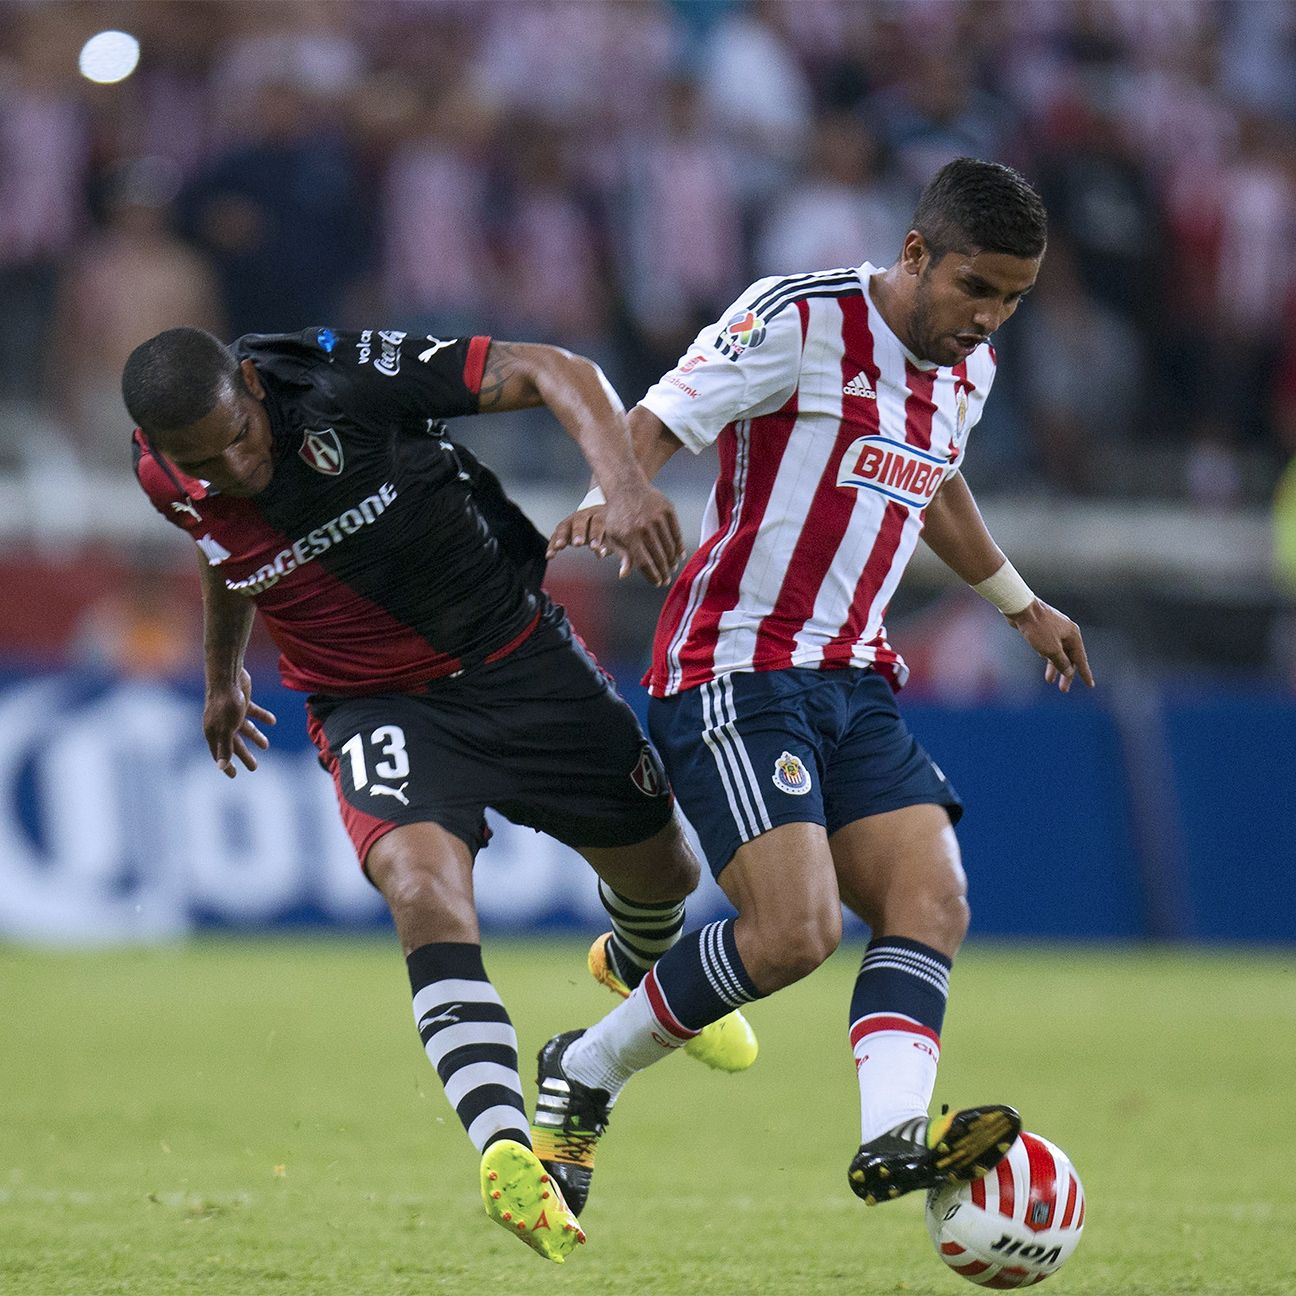 The buzz surrounding the <i>Clasico Tapatio</i> match-up in the Liga MX Liguilla between Atlas and Chivas has reached a fever pitch in Guadalajara.